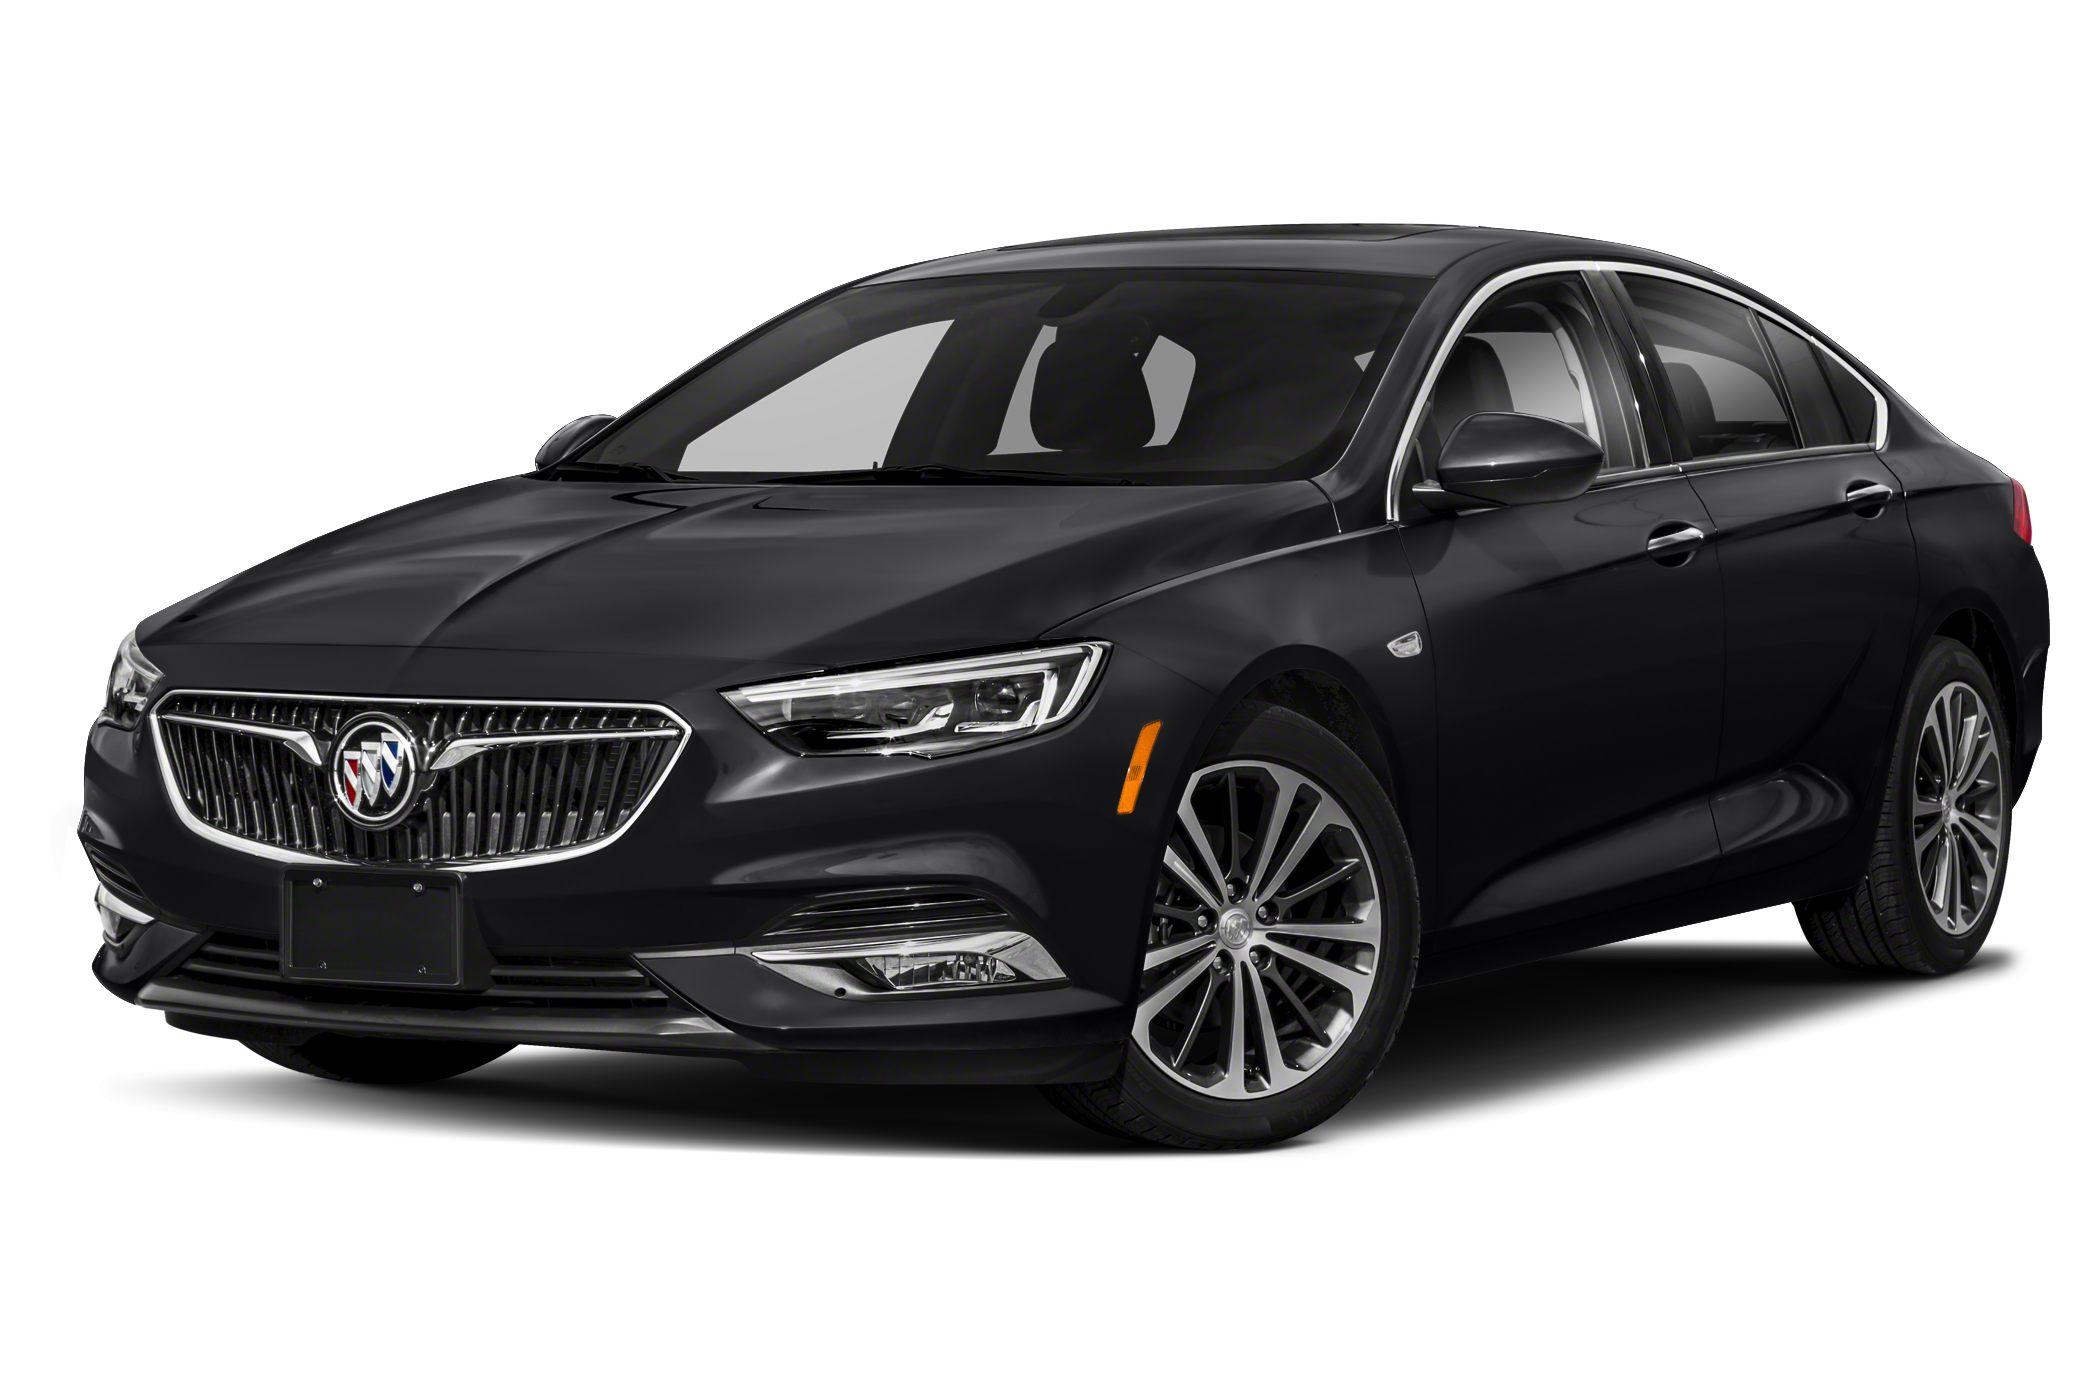 2020 Buick Regal Sportback Pictures New 2021 Buick Verano Weight, Maintenance Schedule, Awd